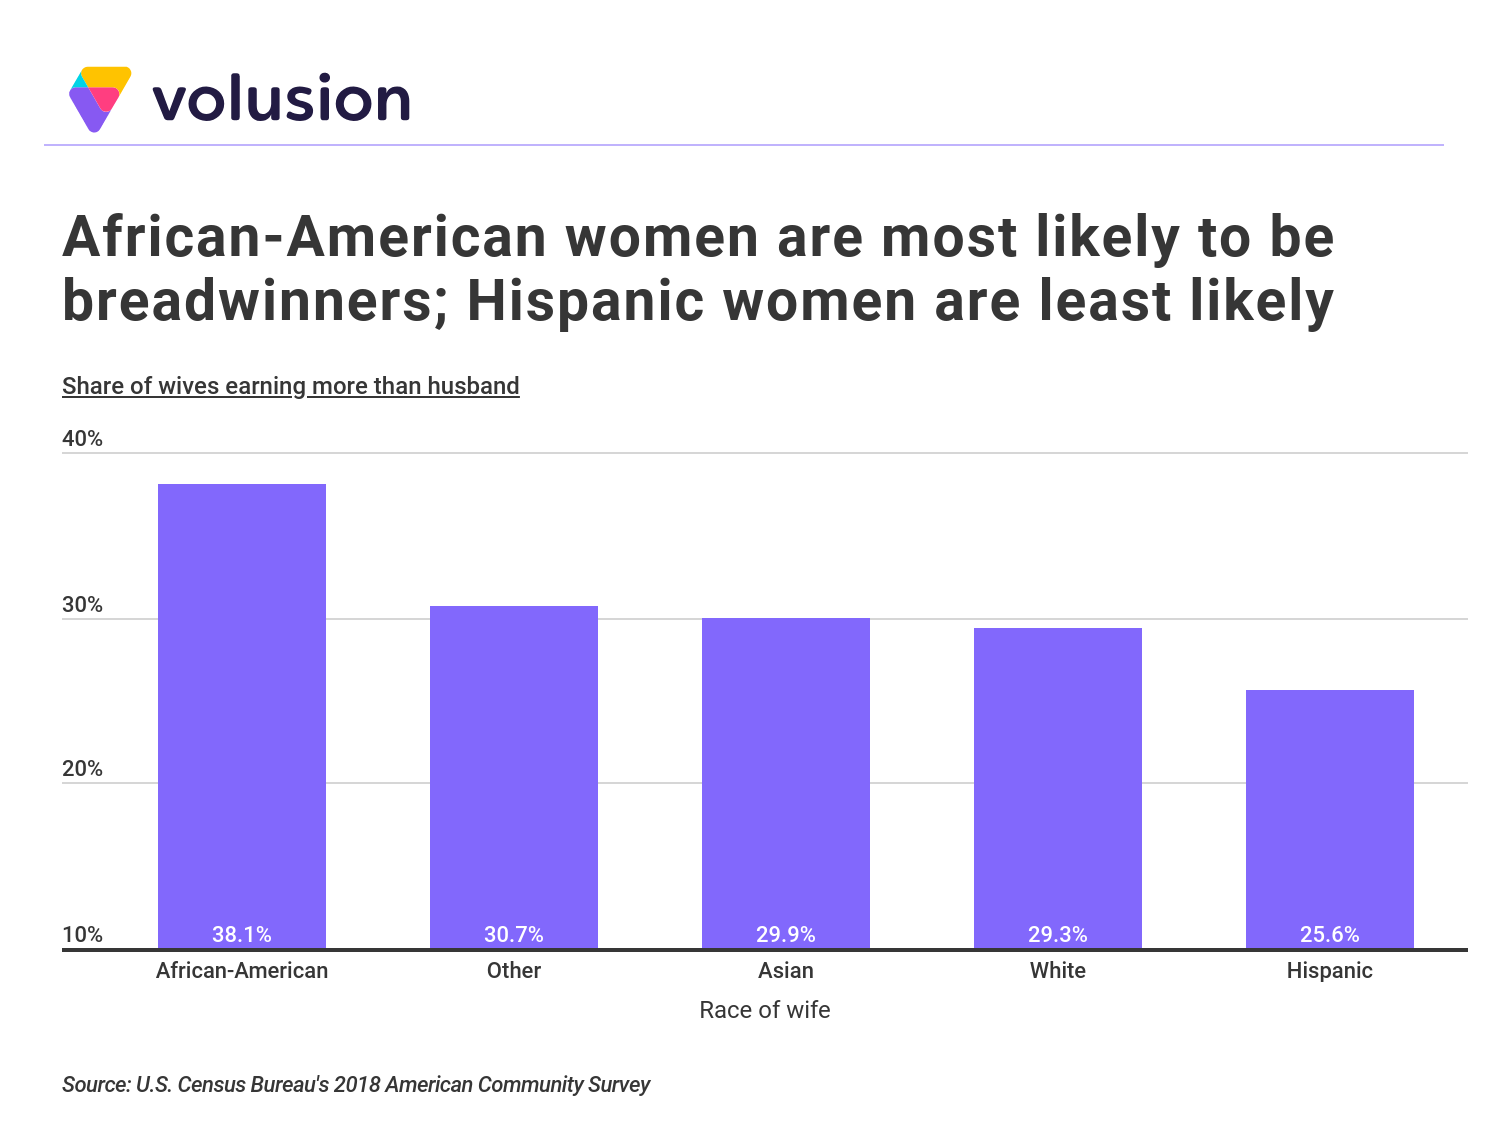 Bar chart showing the percentage of female breadwinners by race